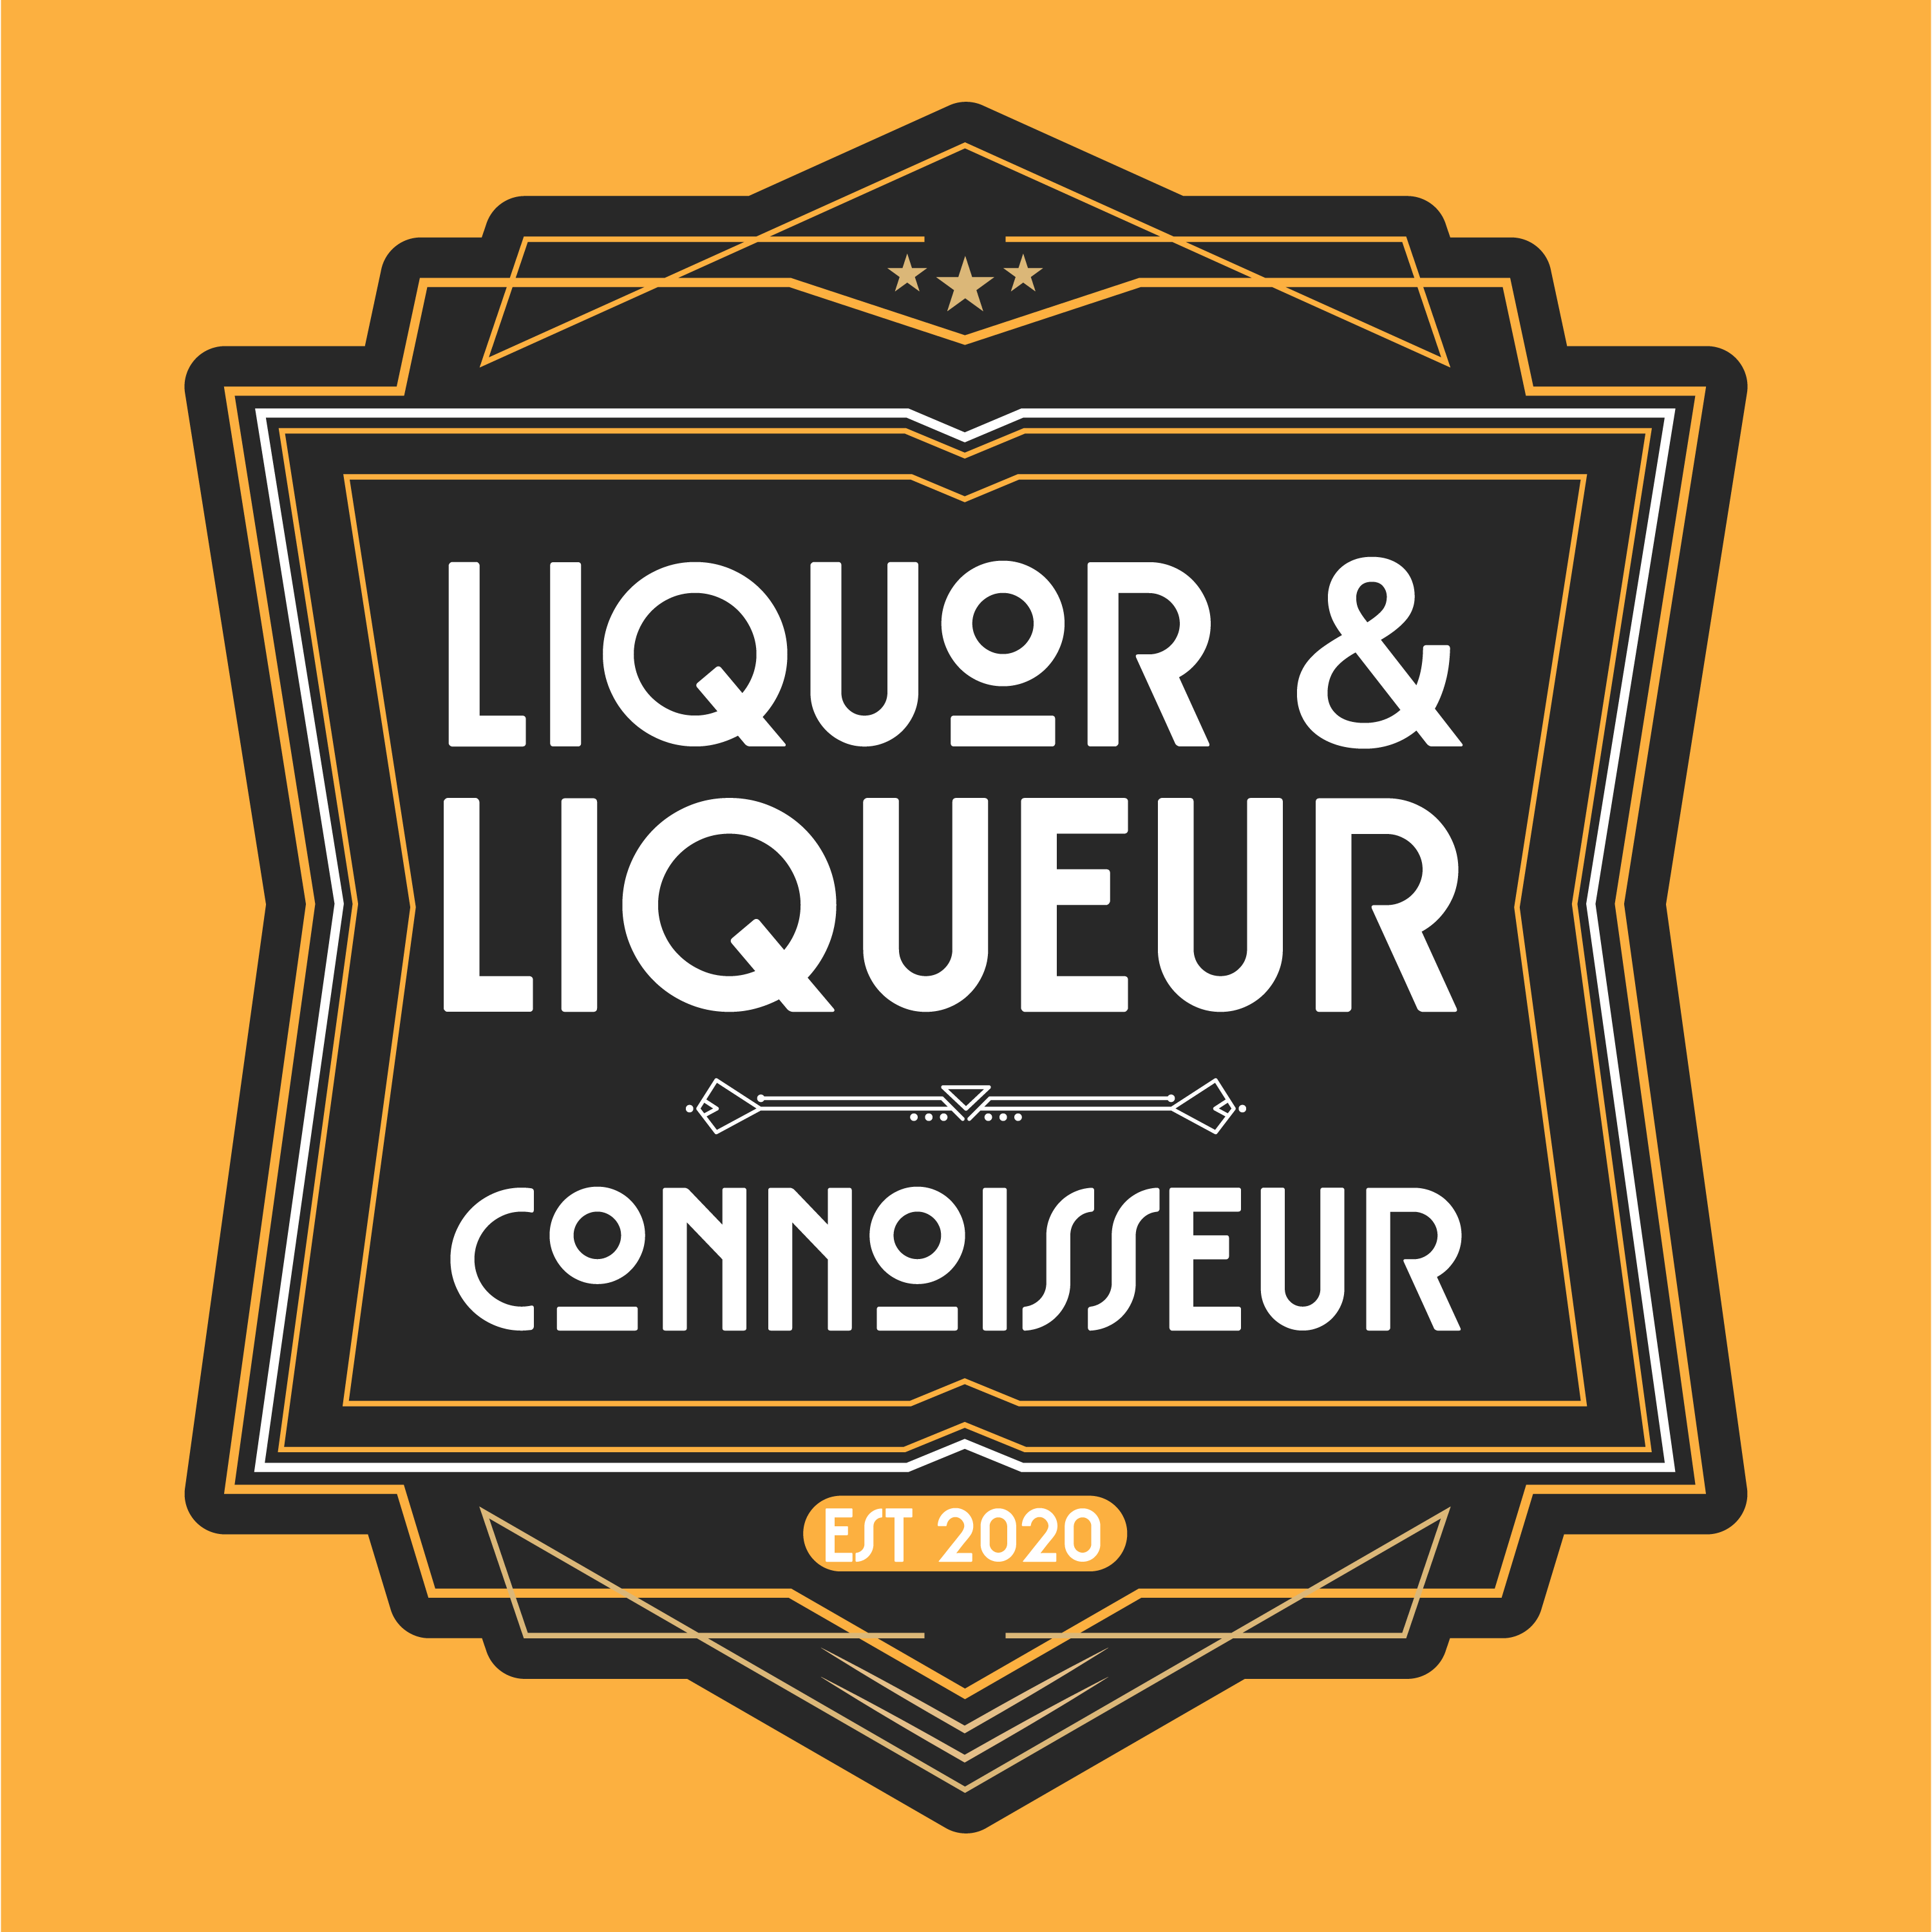 Show artwork for Liquor and Liqueur Connoisseur